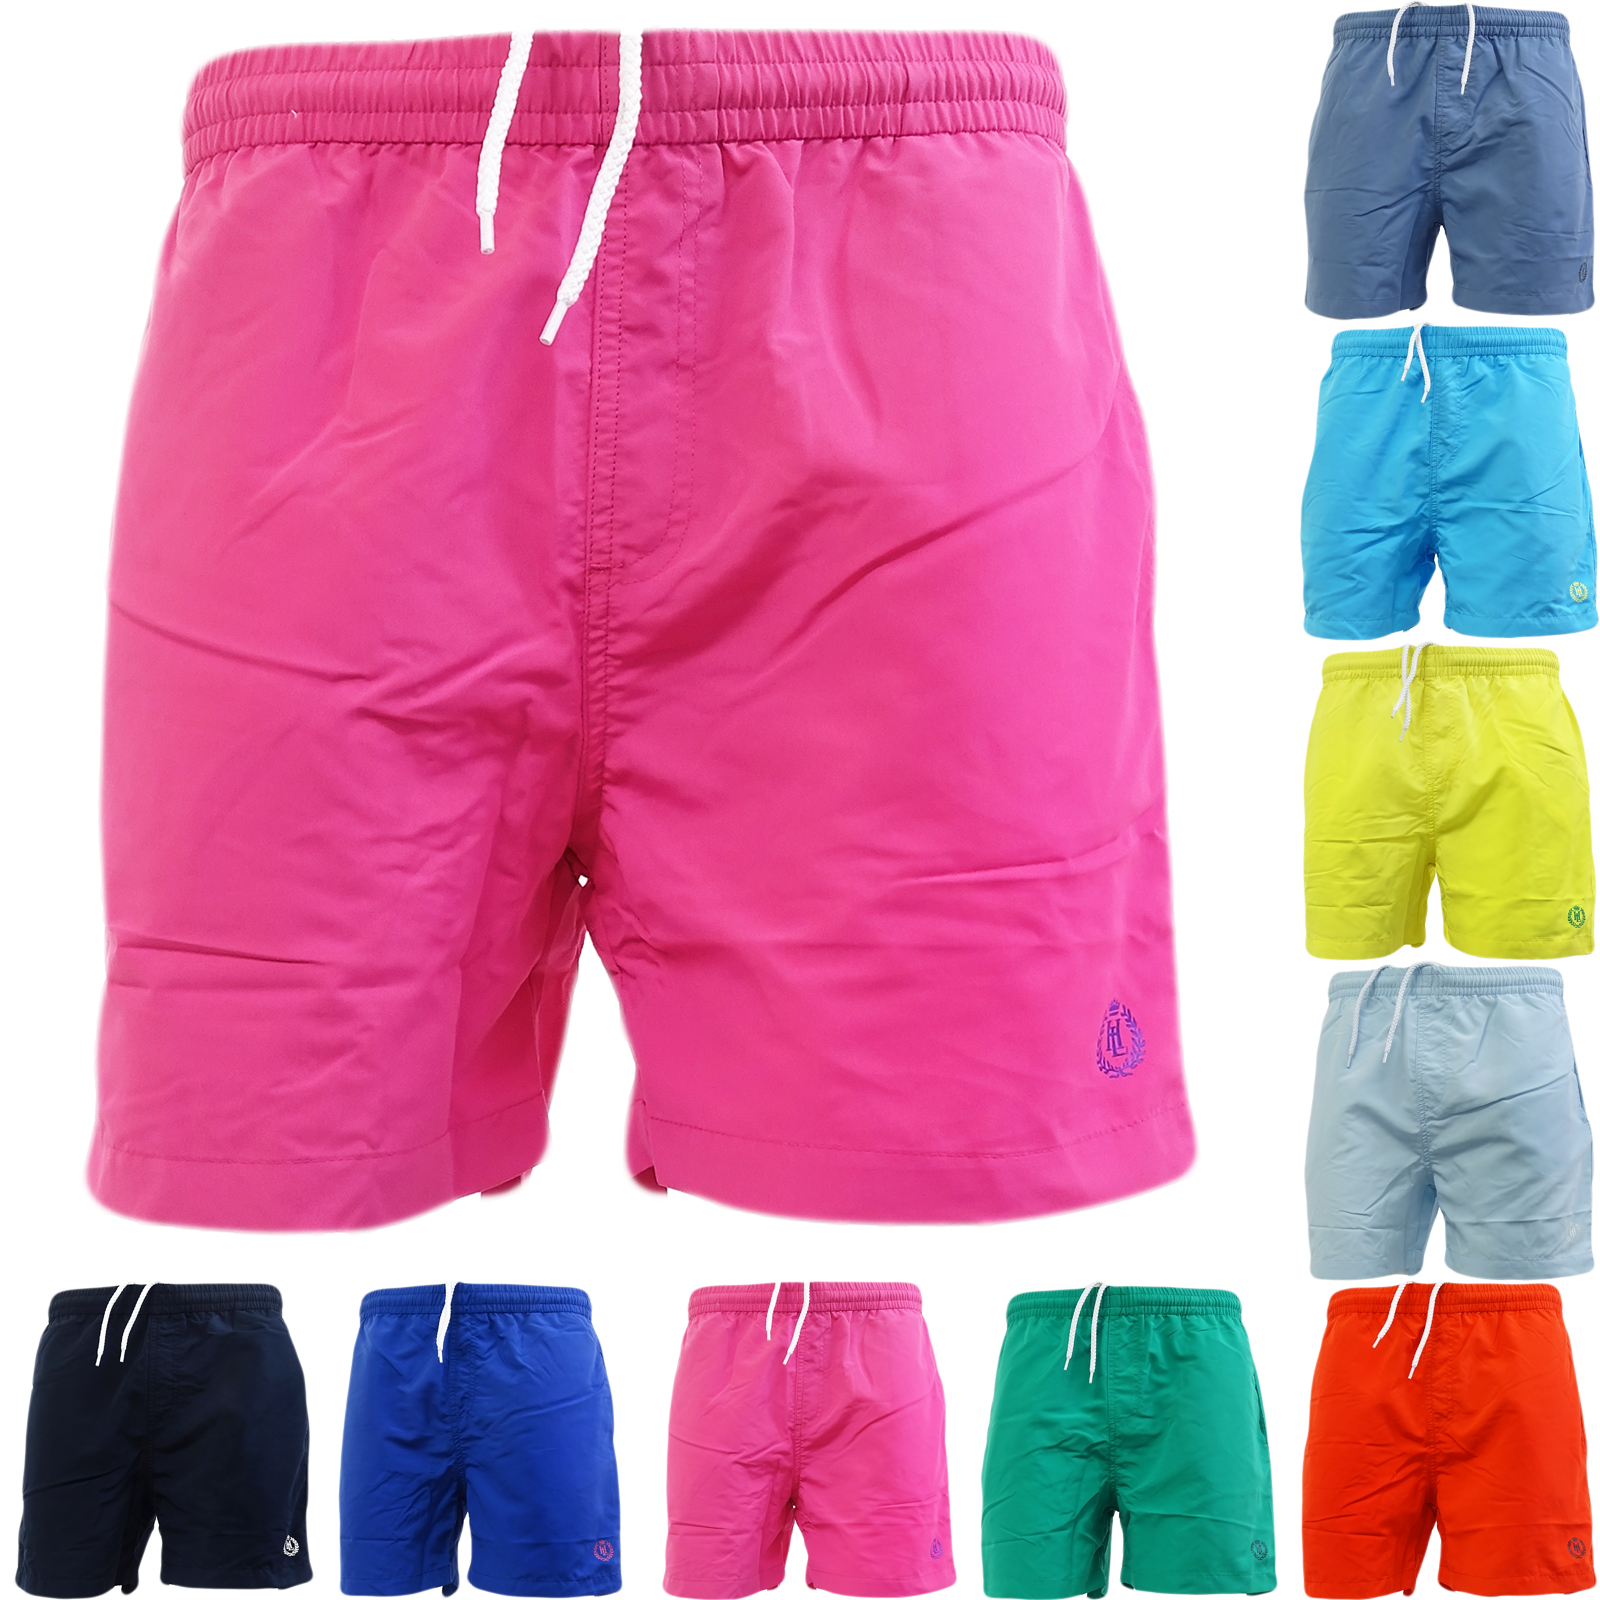 Henri Lloyd Plain Mesh Lined Swim Short Shorts Brixham